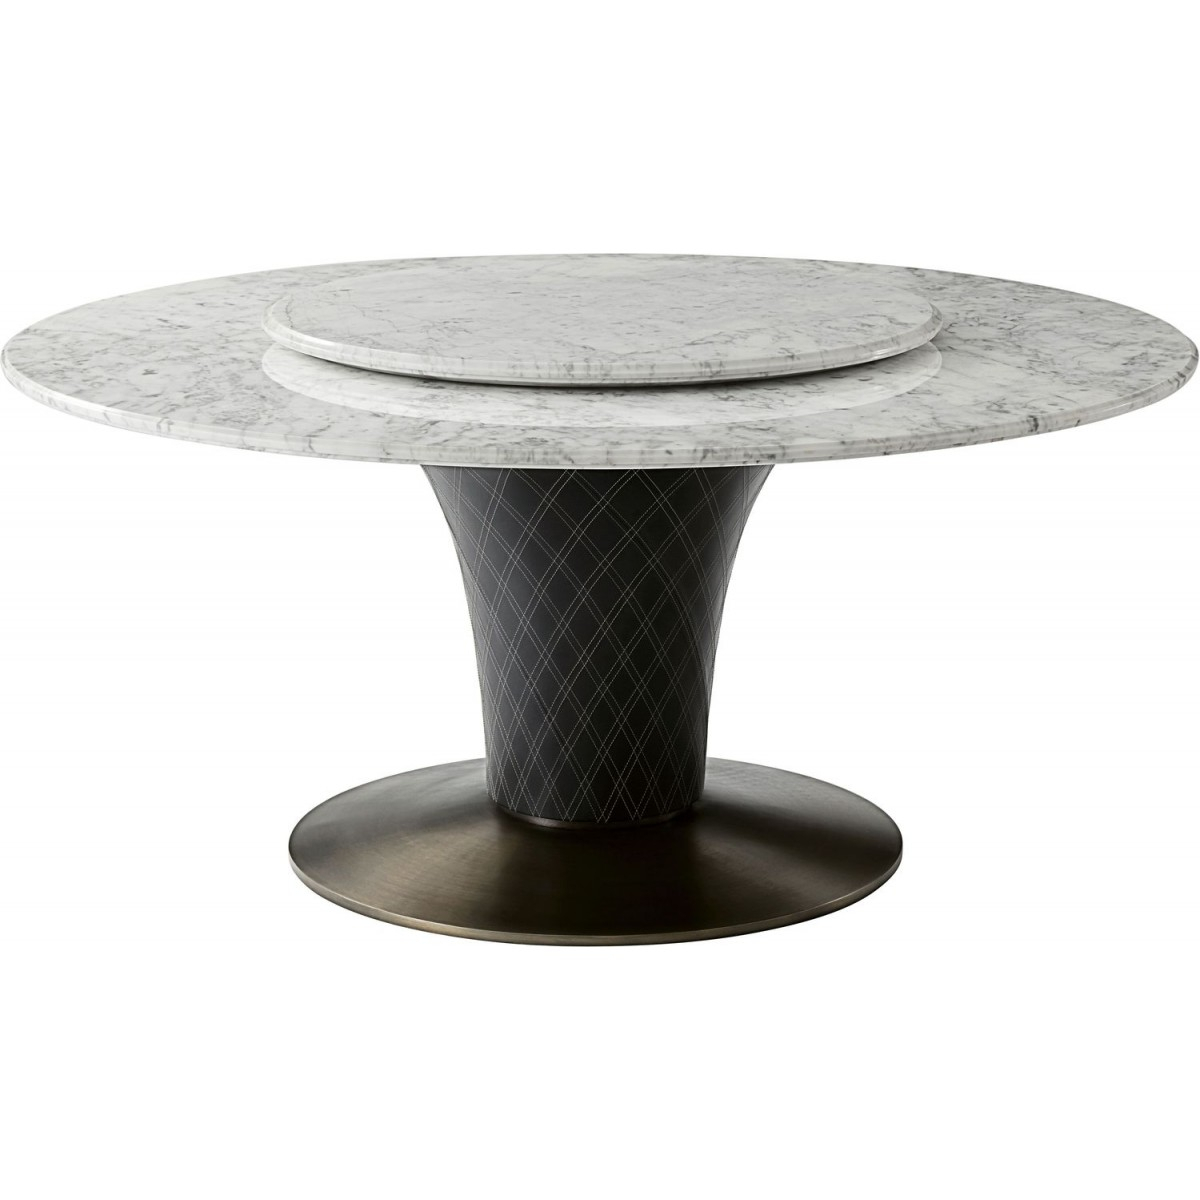 Theodore Alexander Steve Leung Pirouette Round Dining Table With Regard To Most Recently Released Alexandra Round Marble Pedestal Dining Tables (Image 25 of 25)